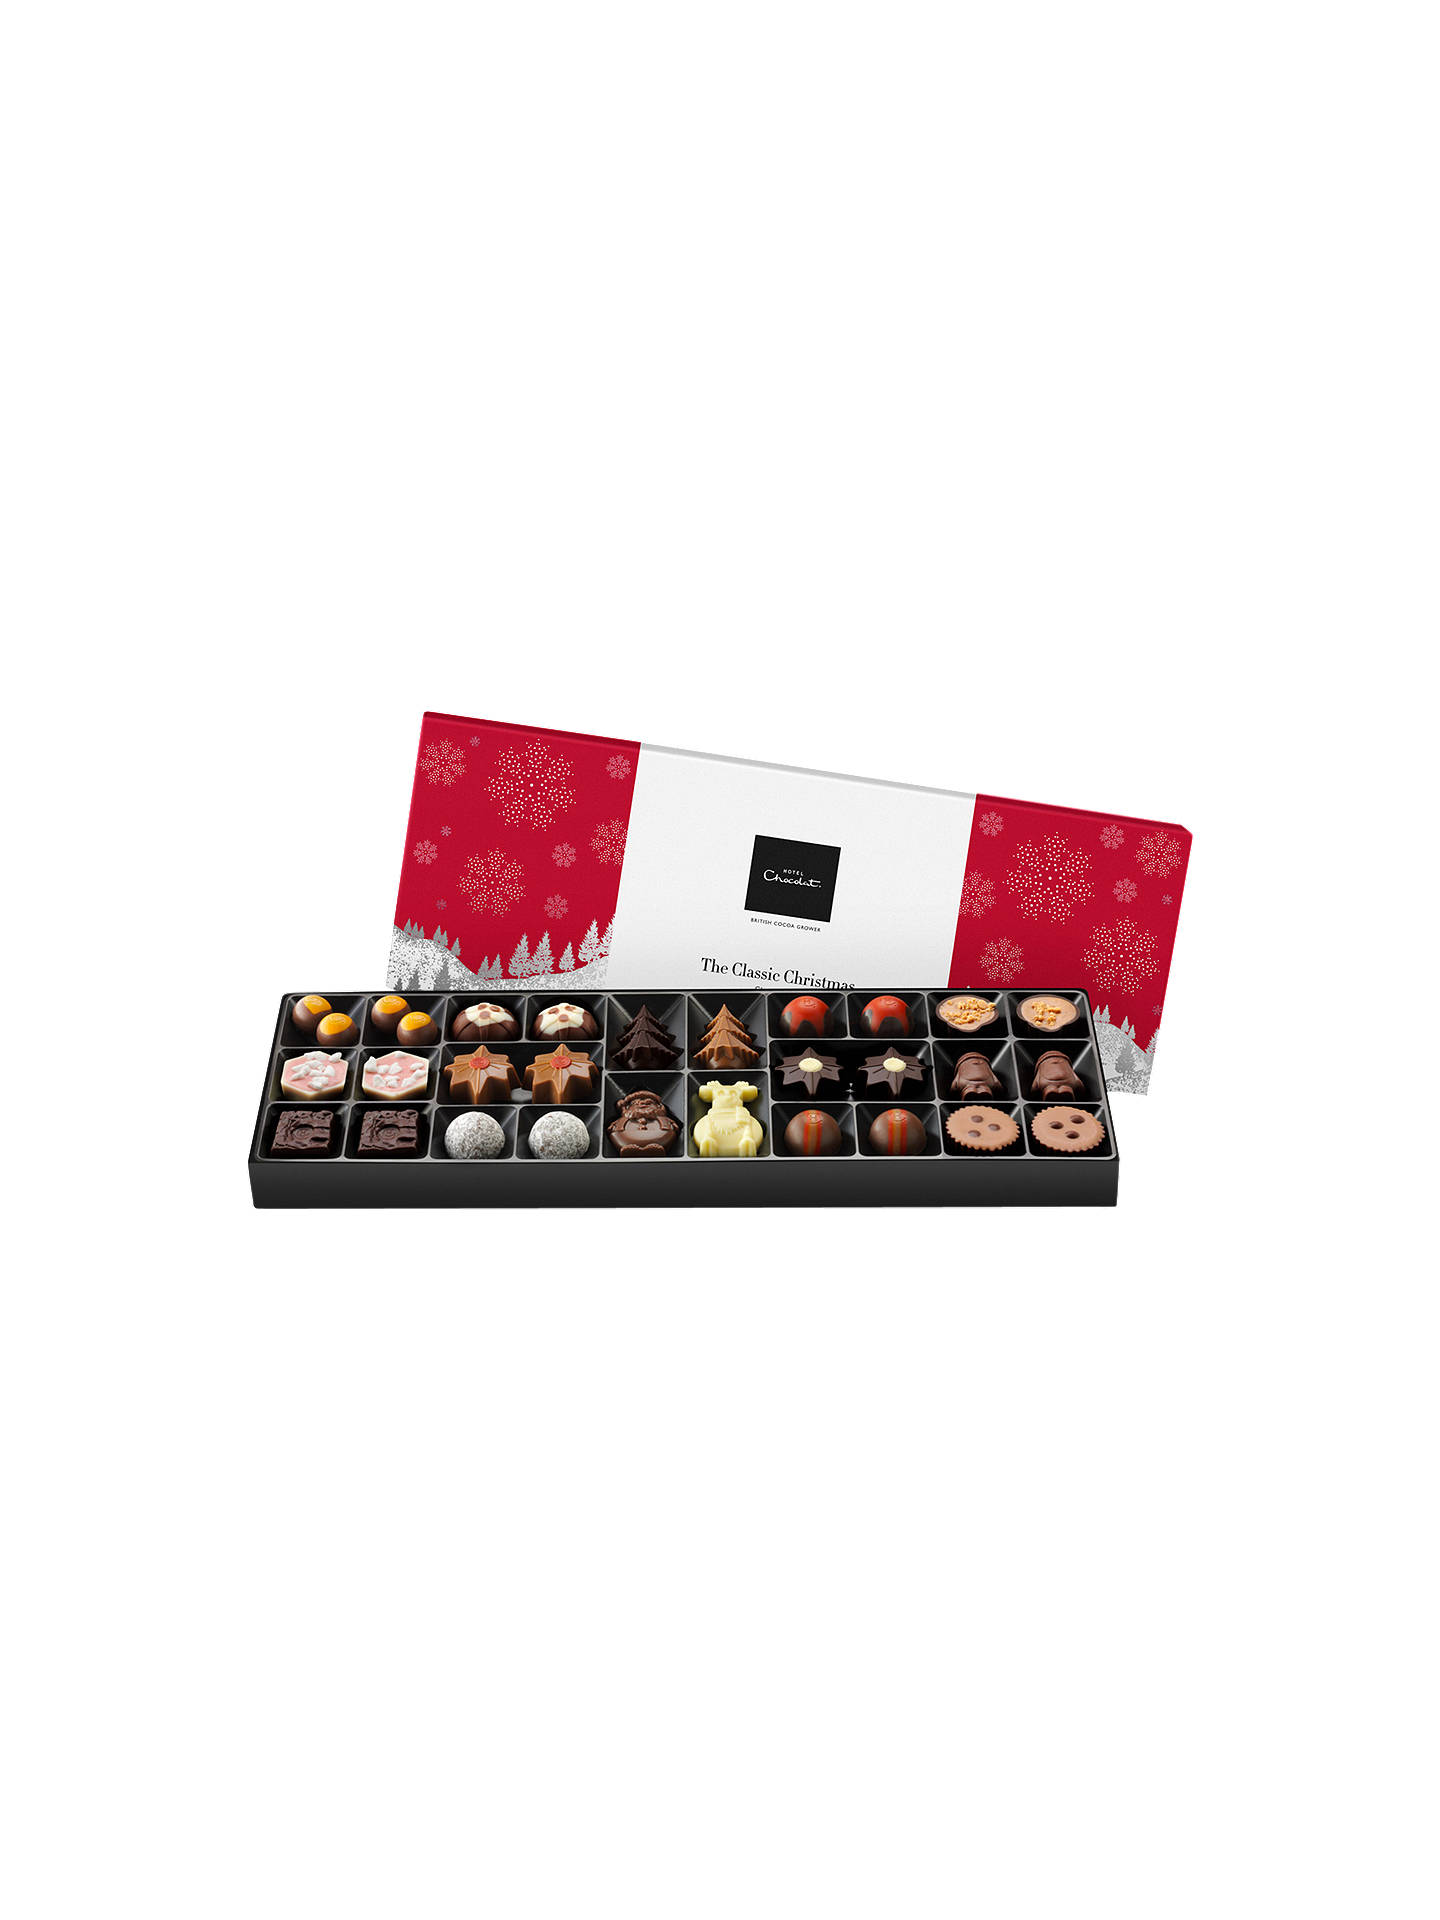 BuyHotel Chocolat The Classic Christmas Sleekster, 325g Online at johnlewis.com